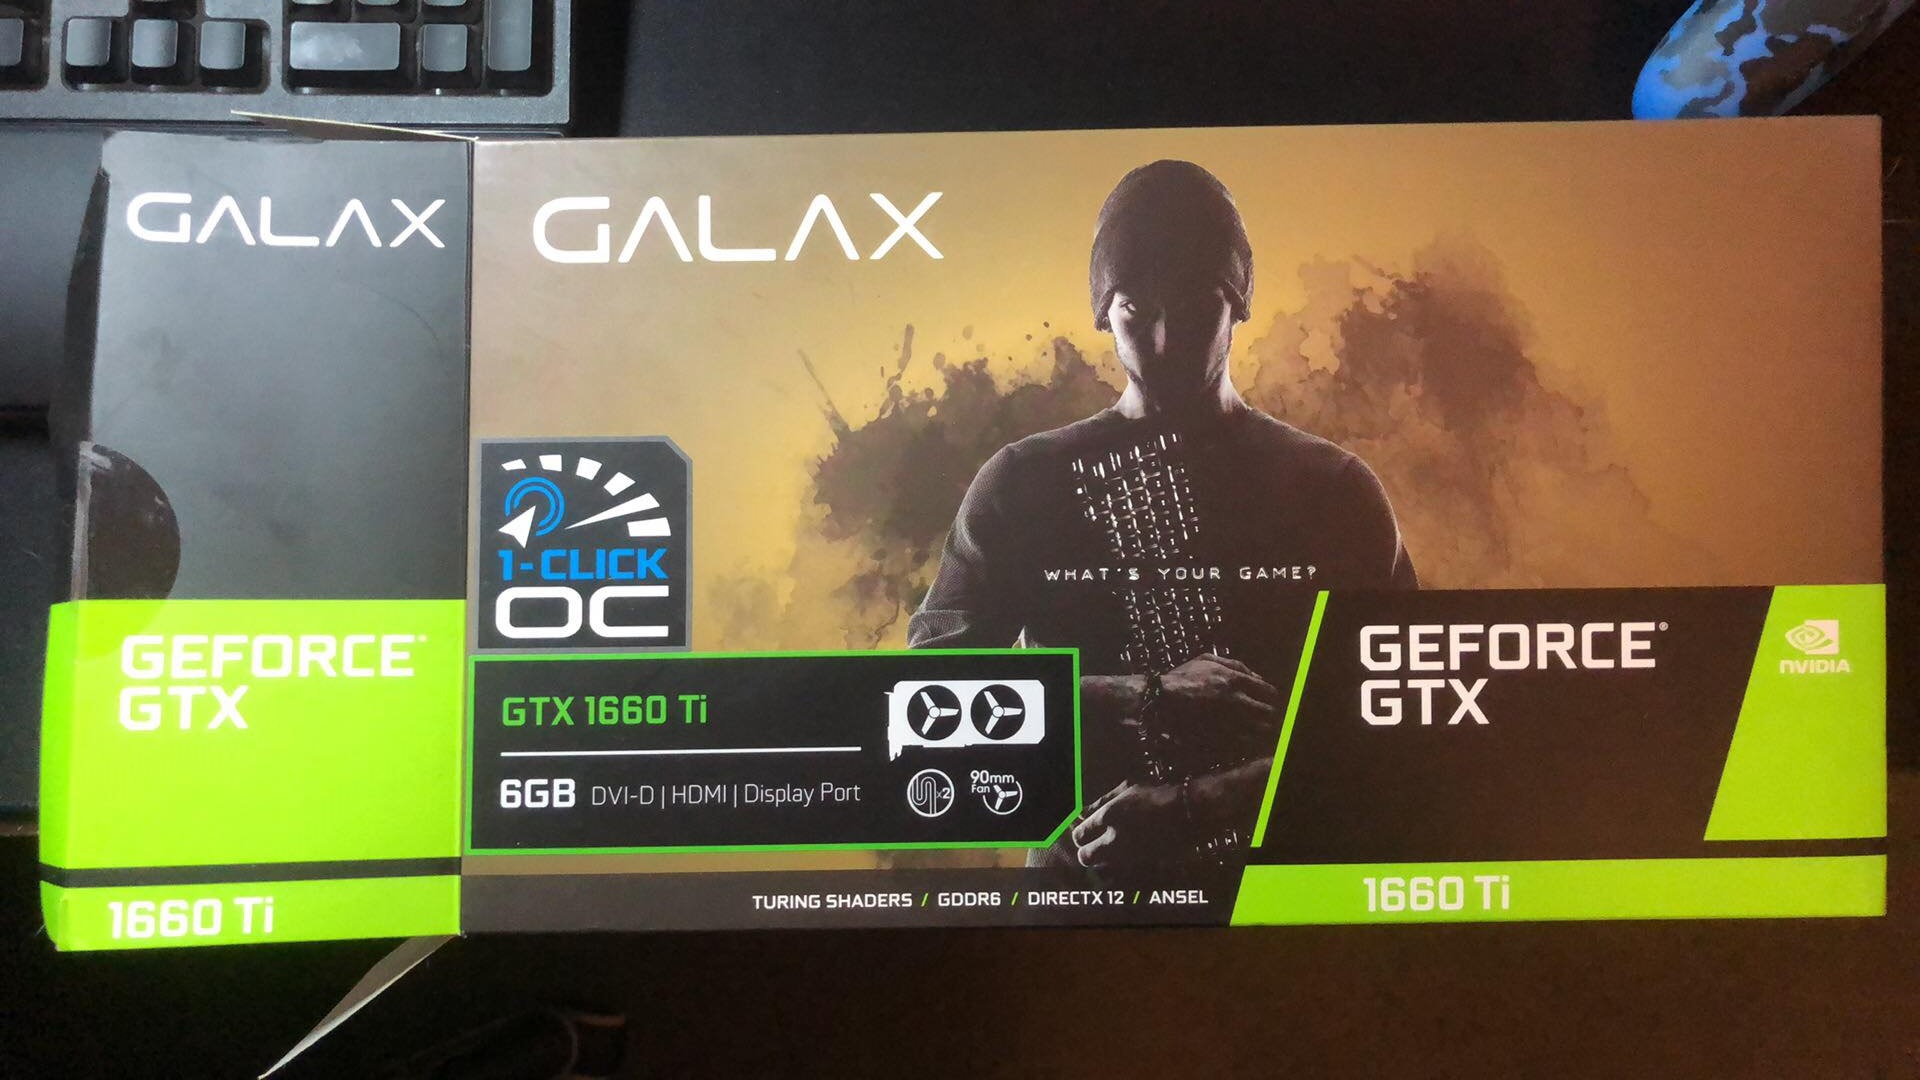 Images of unboxed Nvidia GeForce GTX 1660 Ti leaked on